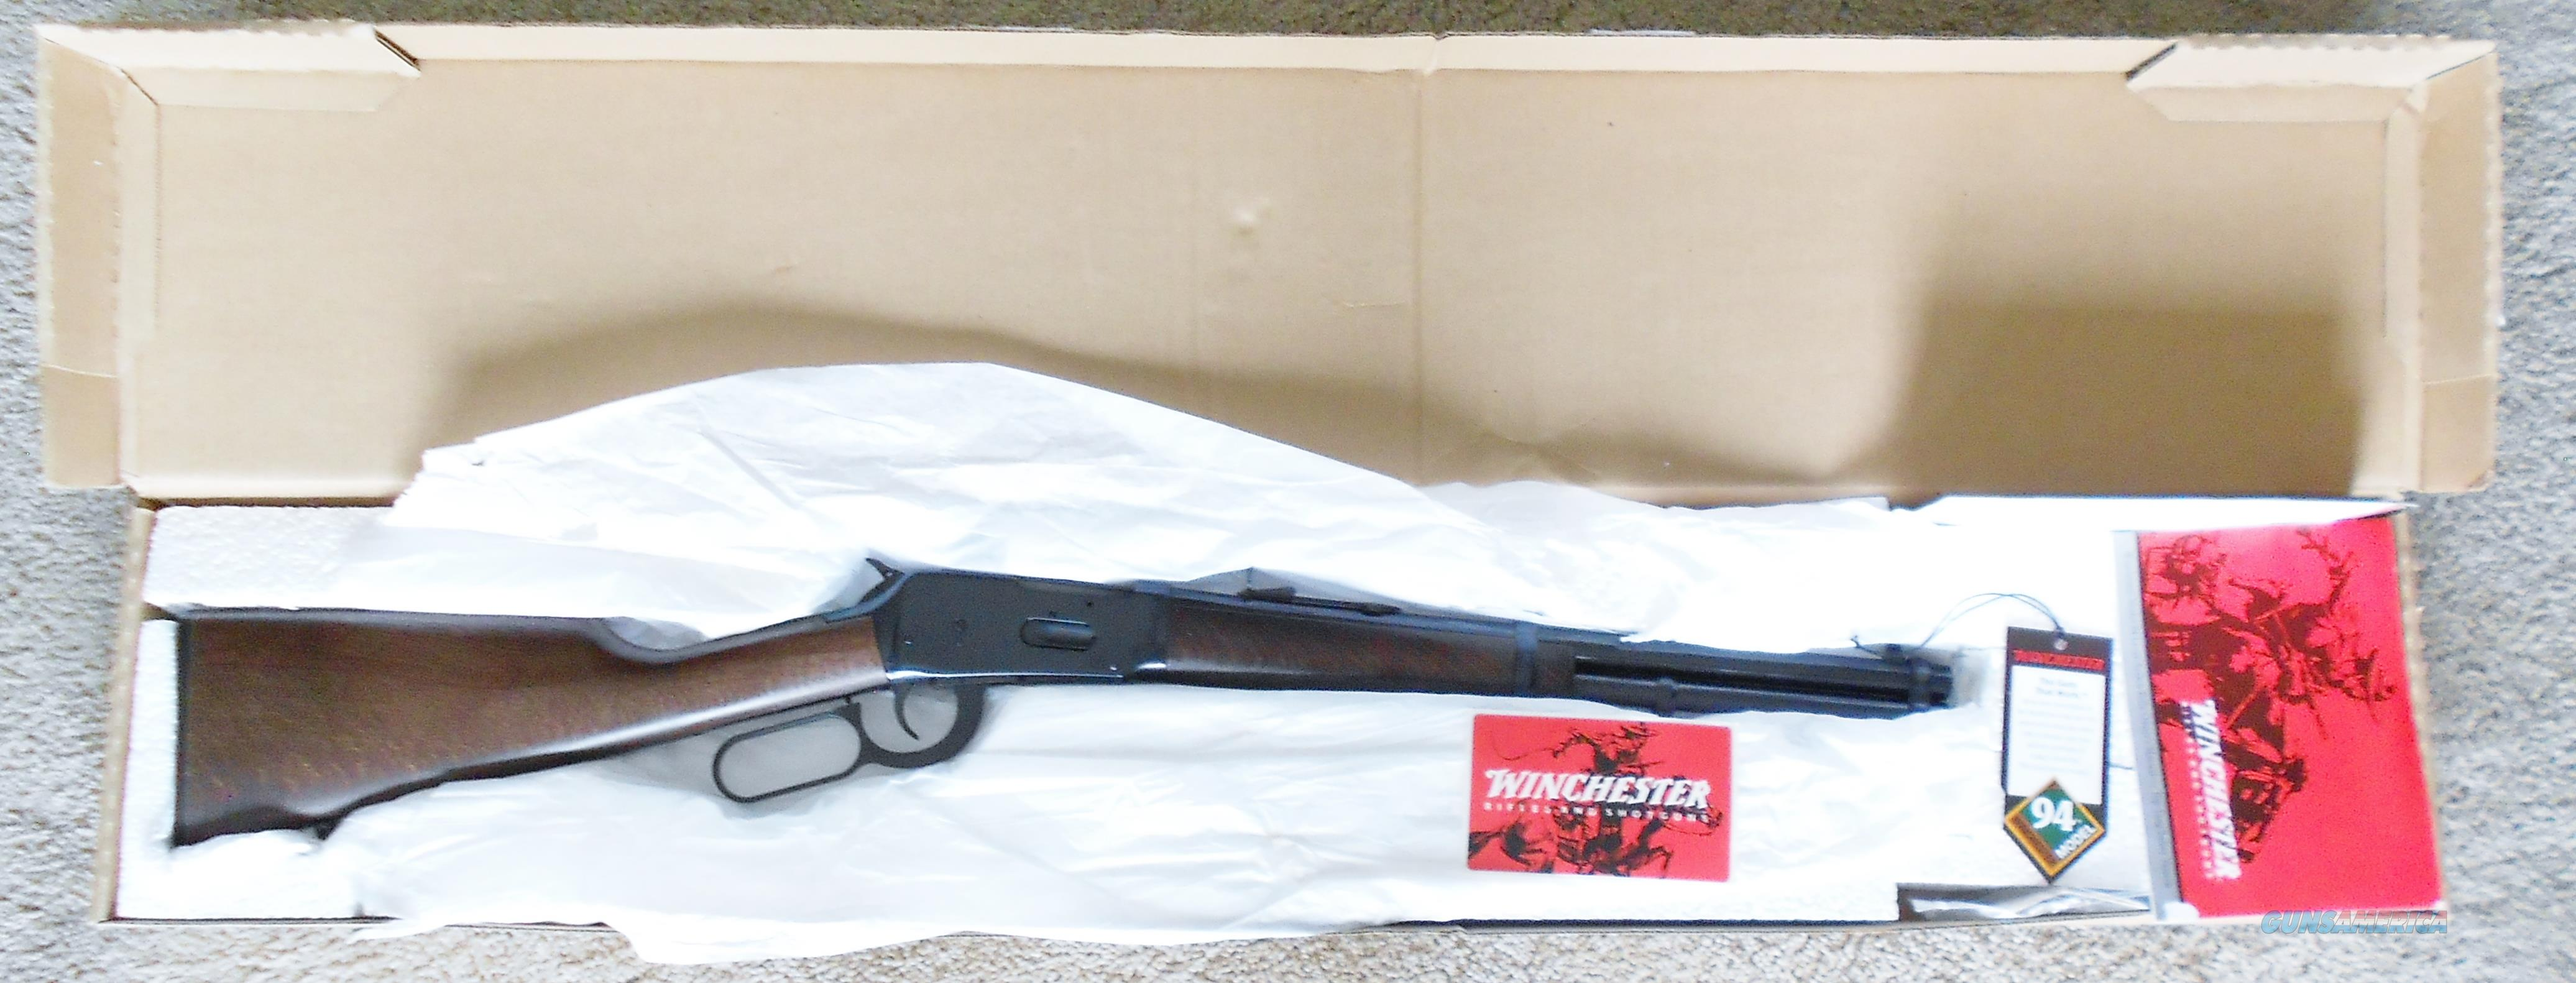 94 Model Winchester Trapper .44 Mag  Guns > Rifles > Winchester Rifles - Modern Lever > Model 94 > Post-64